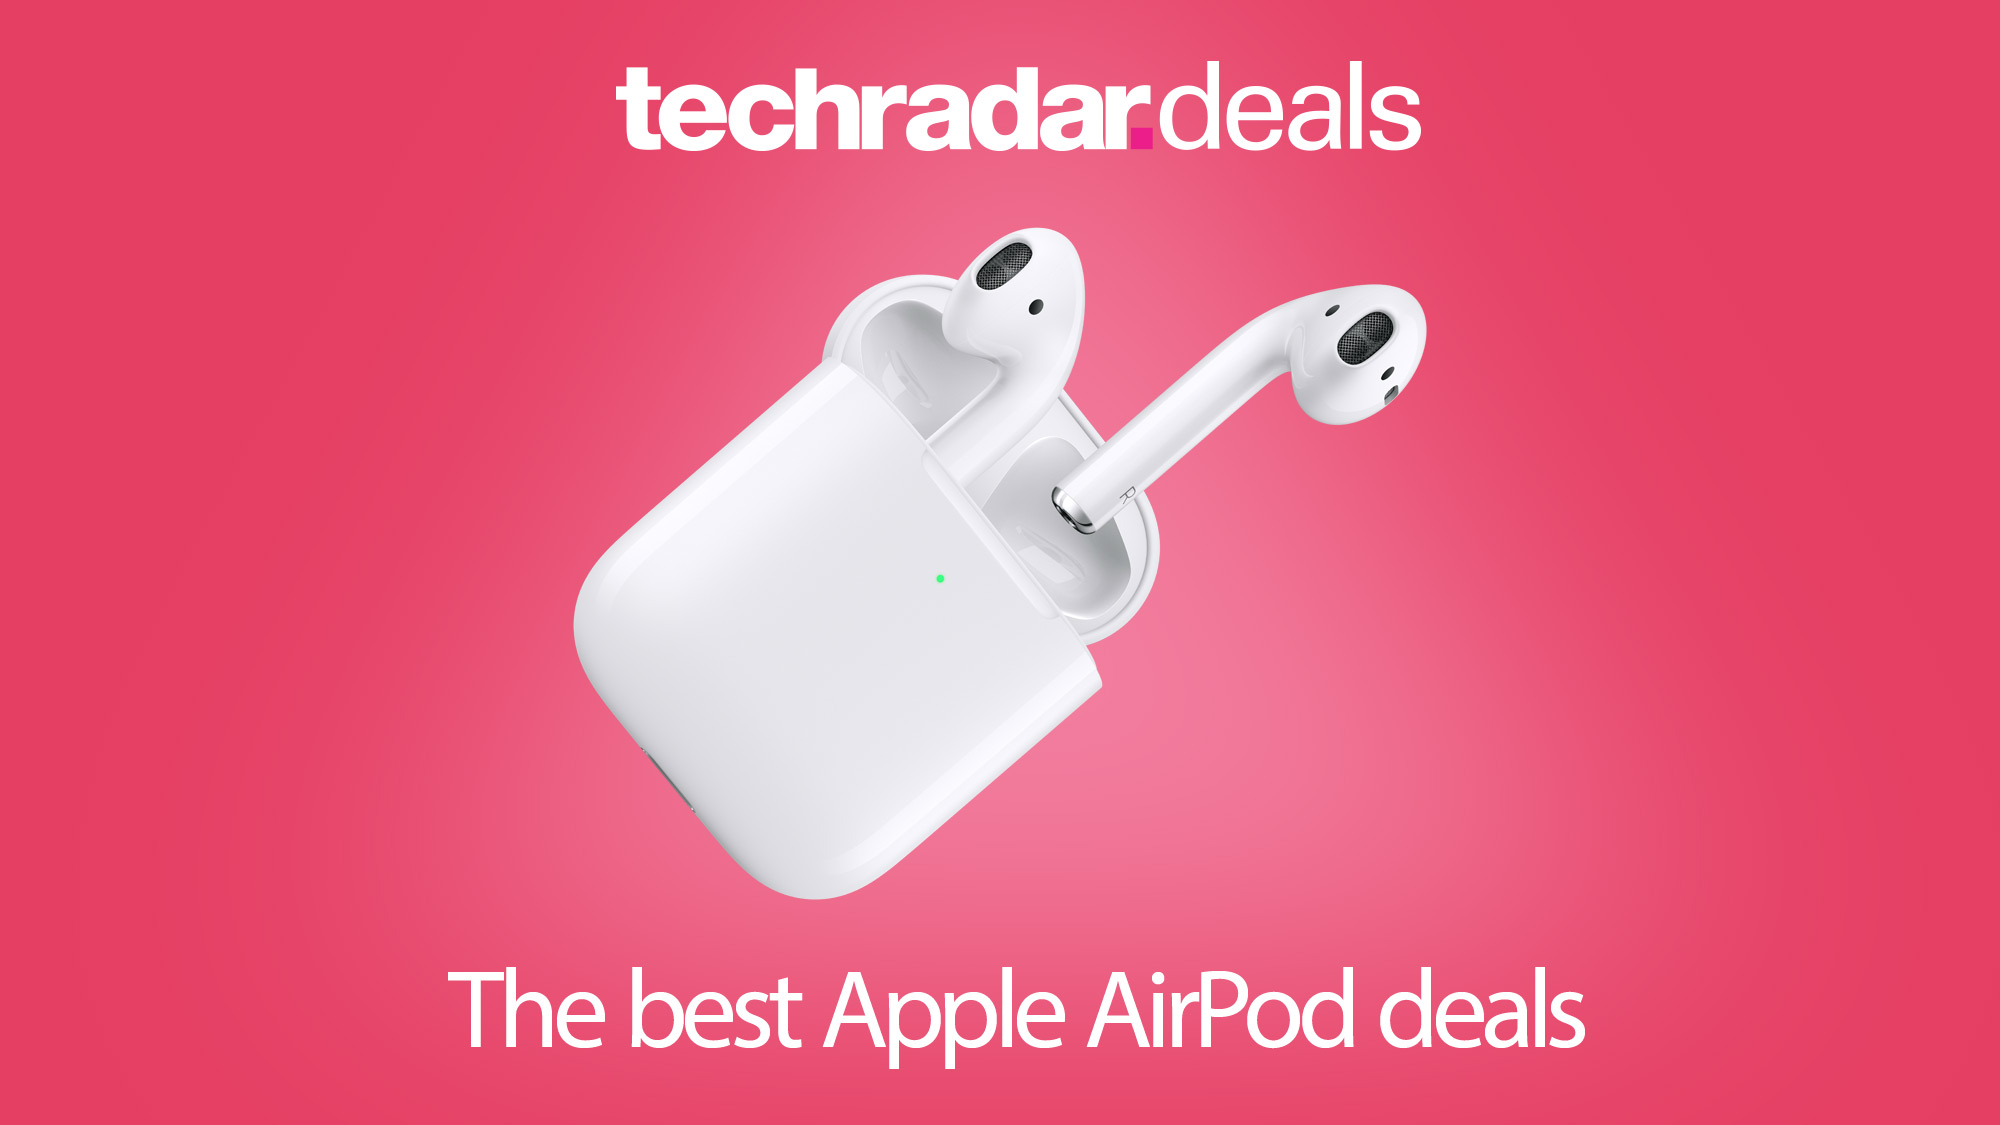 The cheapest AirPod prices, sales and deals in September